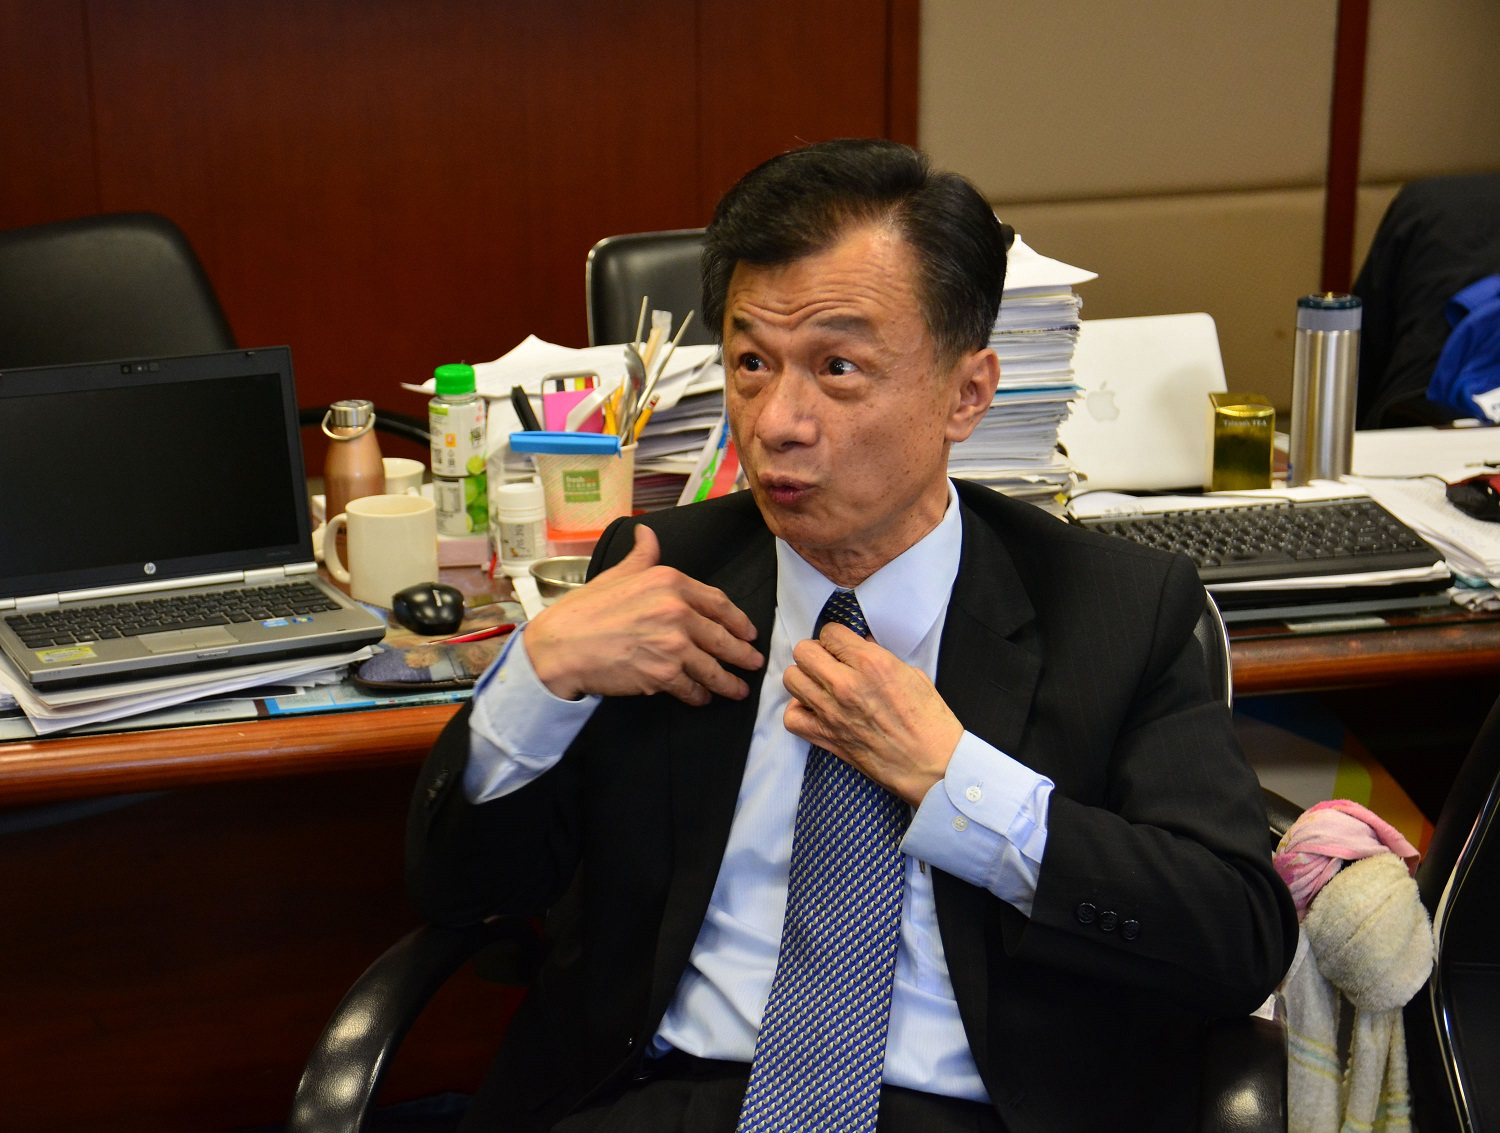 Taiwan's Justice Minister Chiu Tai-san responds to debate whether current marriage laws are unconstitutional and violate rights of gay couples.